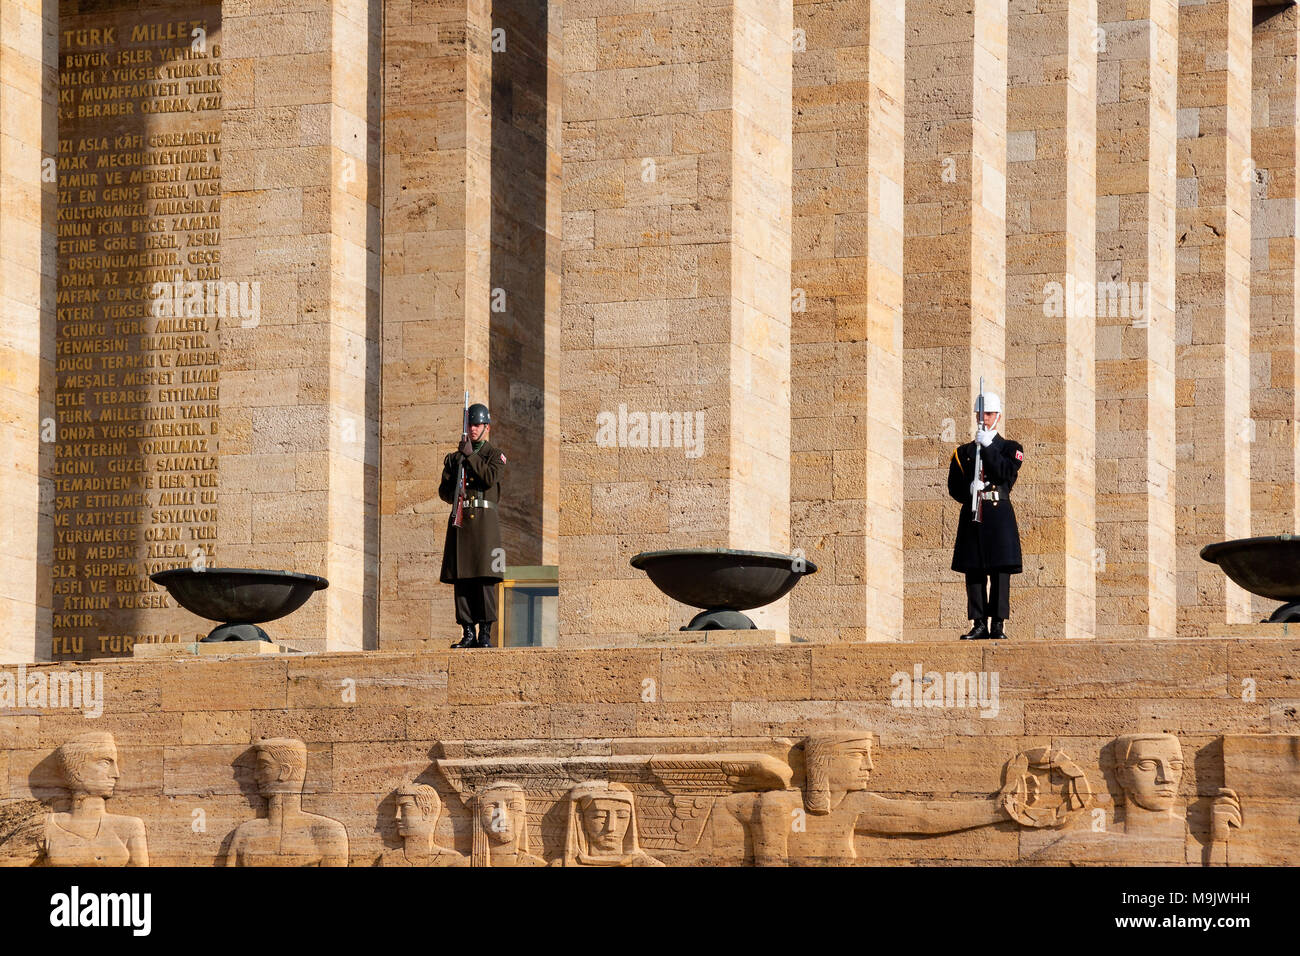 Guardsmen of Ataturk Mausoleum, Anitkabir, monumental tomb of Mustafa Kemal Ataturk. ANKARA, TURKEY - DECEMBER 08, 2010 Stock Photo